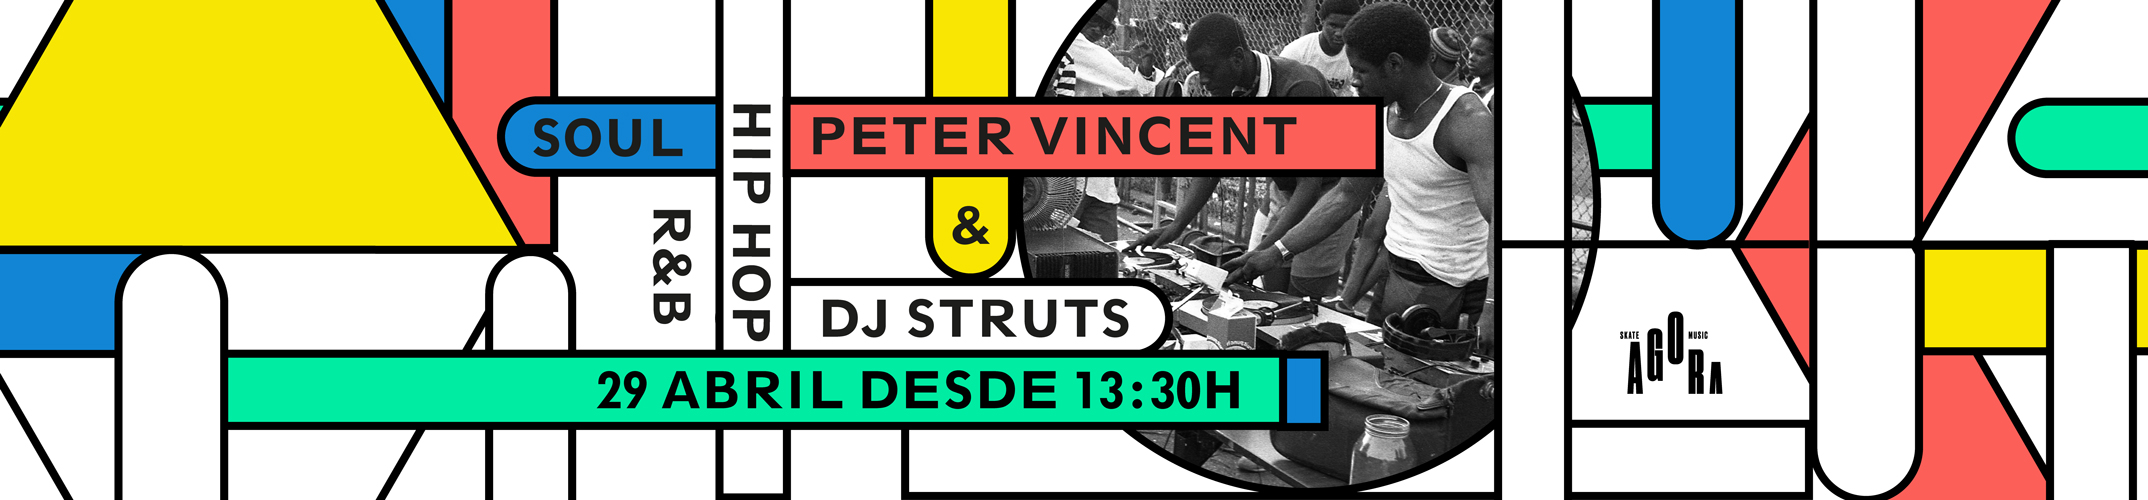 DJ STRUTS & PETER VINCENT BRING THE BEST HIP HOP, R&B AND FUNK TO SKATE AGORA CANTINA. SATURDAY APRIL 29TH